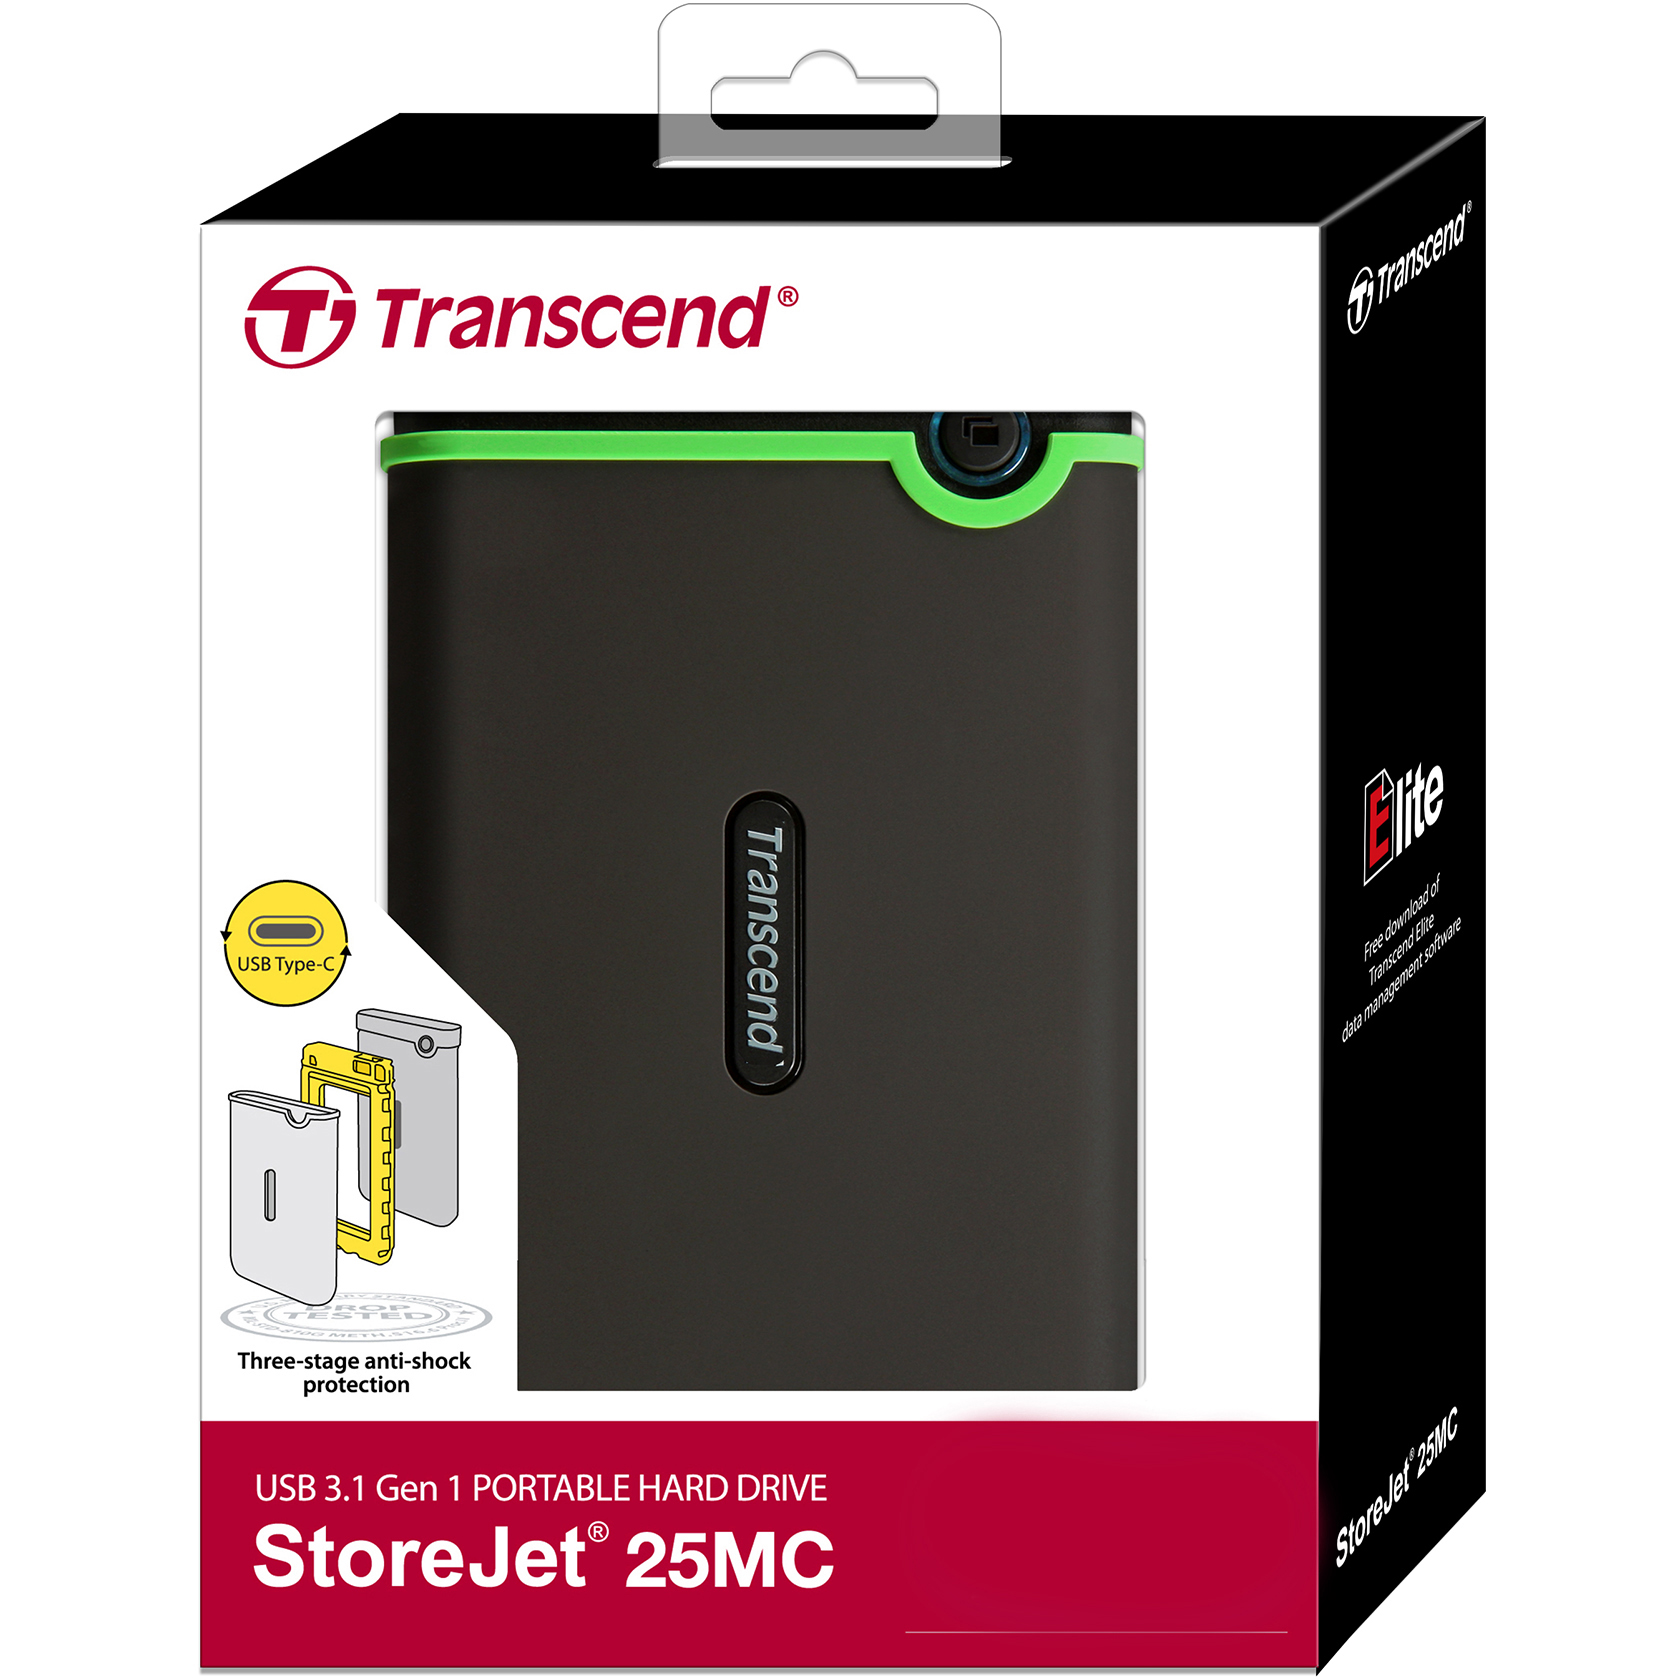 Original Transcend StoreJet 2TB USB Type-C External Hard Drive (TS2TSJ25MC)